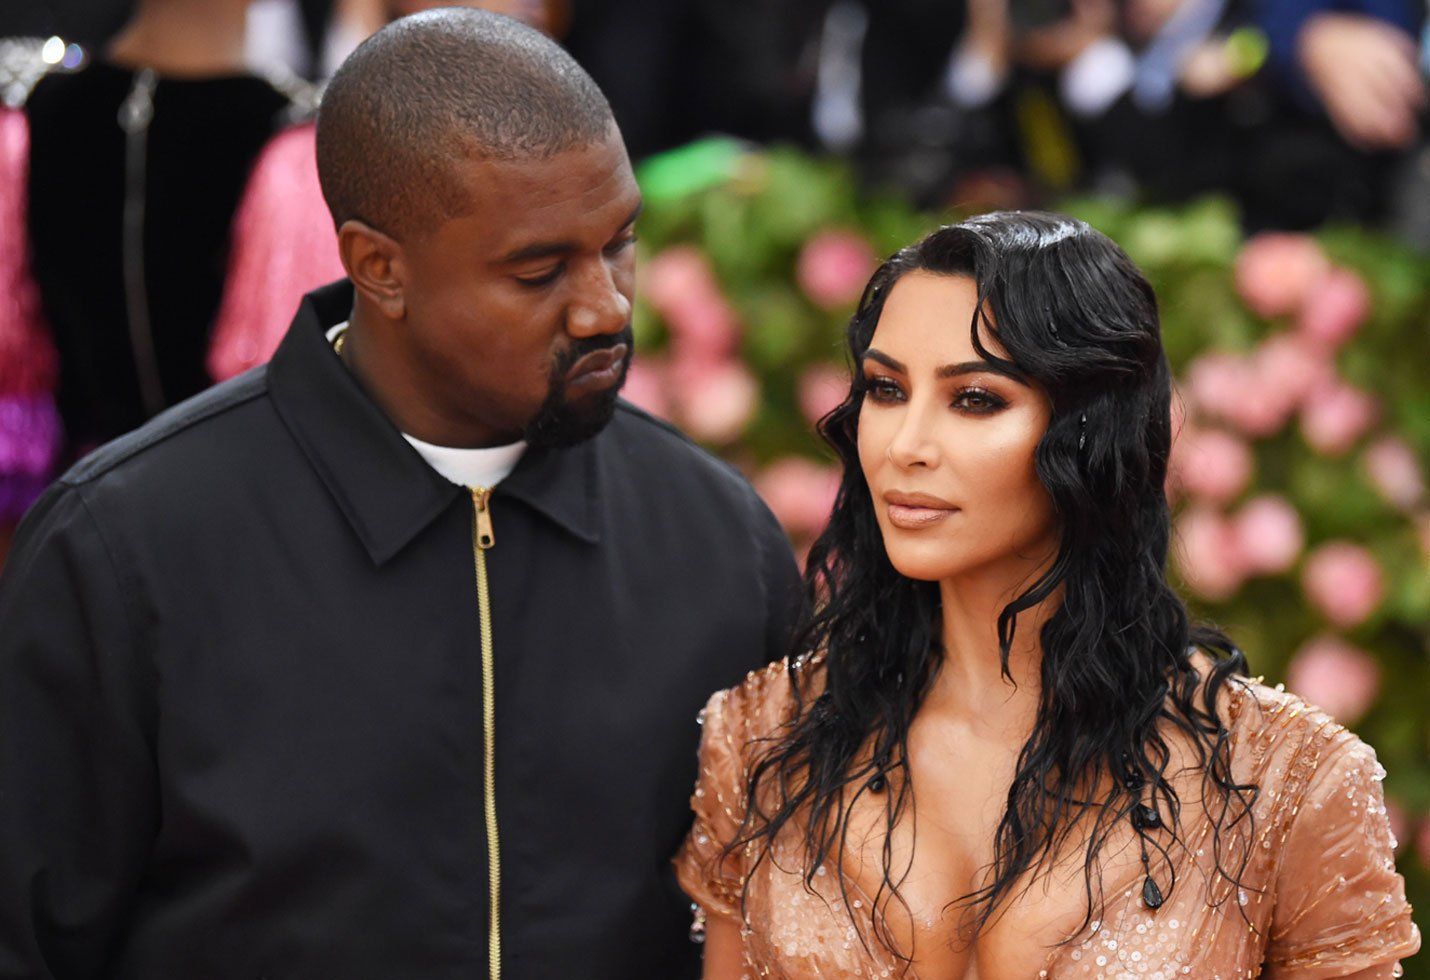 Kim Kardashian Has Fans In Awe After Posting Videos With Kanye West From The One Year Anniversary Of Sunday Service In 2020 Kim Kardashian Kardashian Kanye West